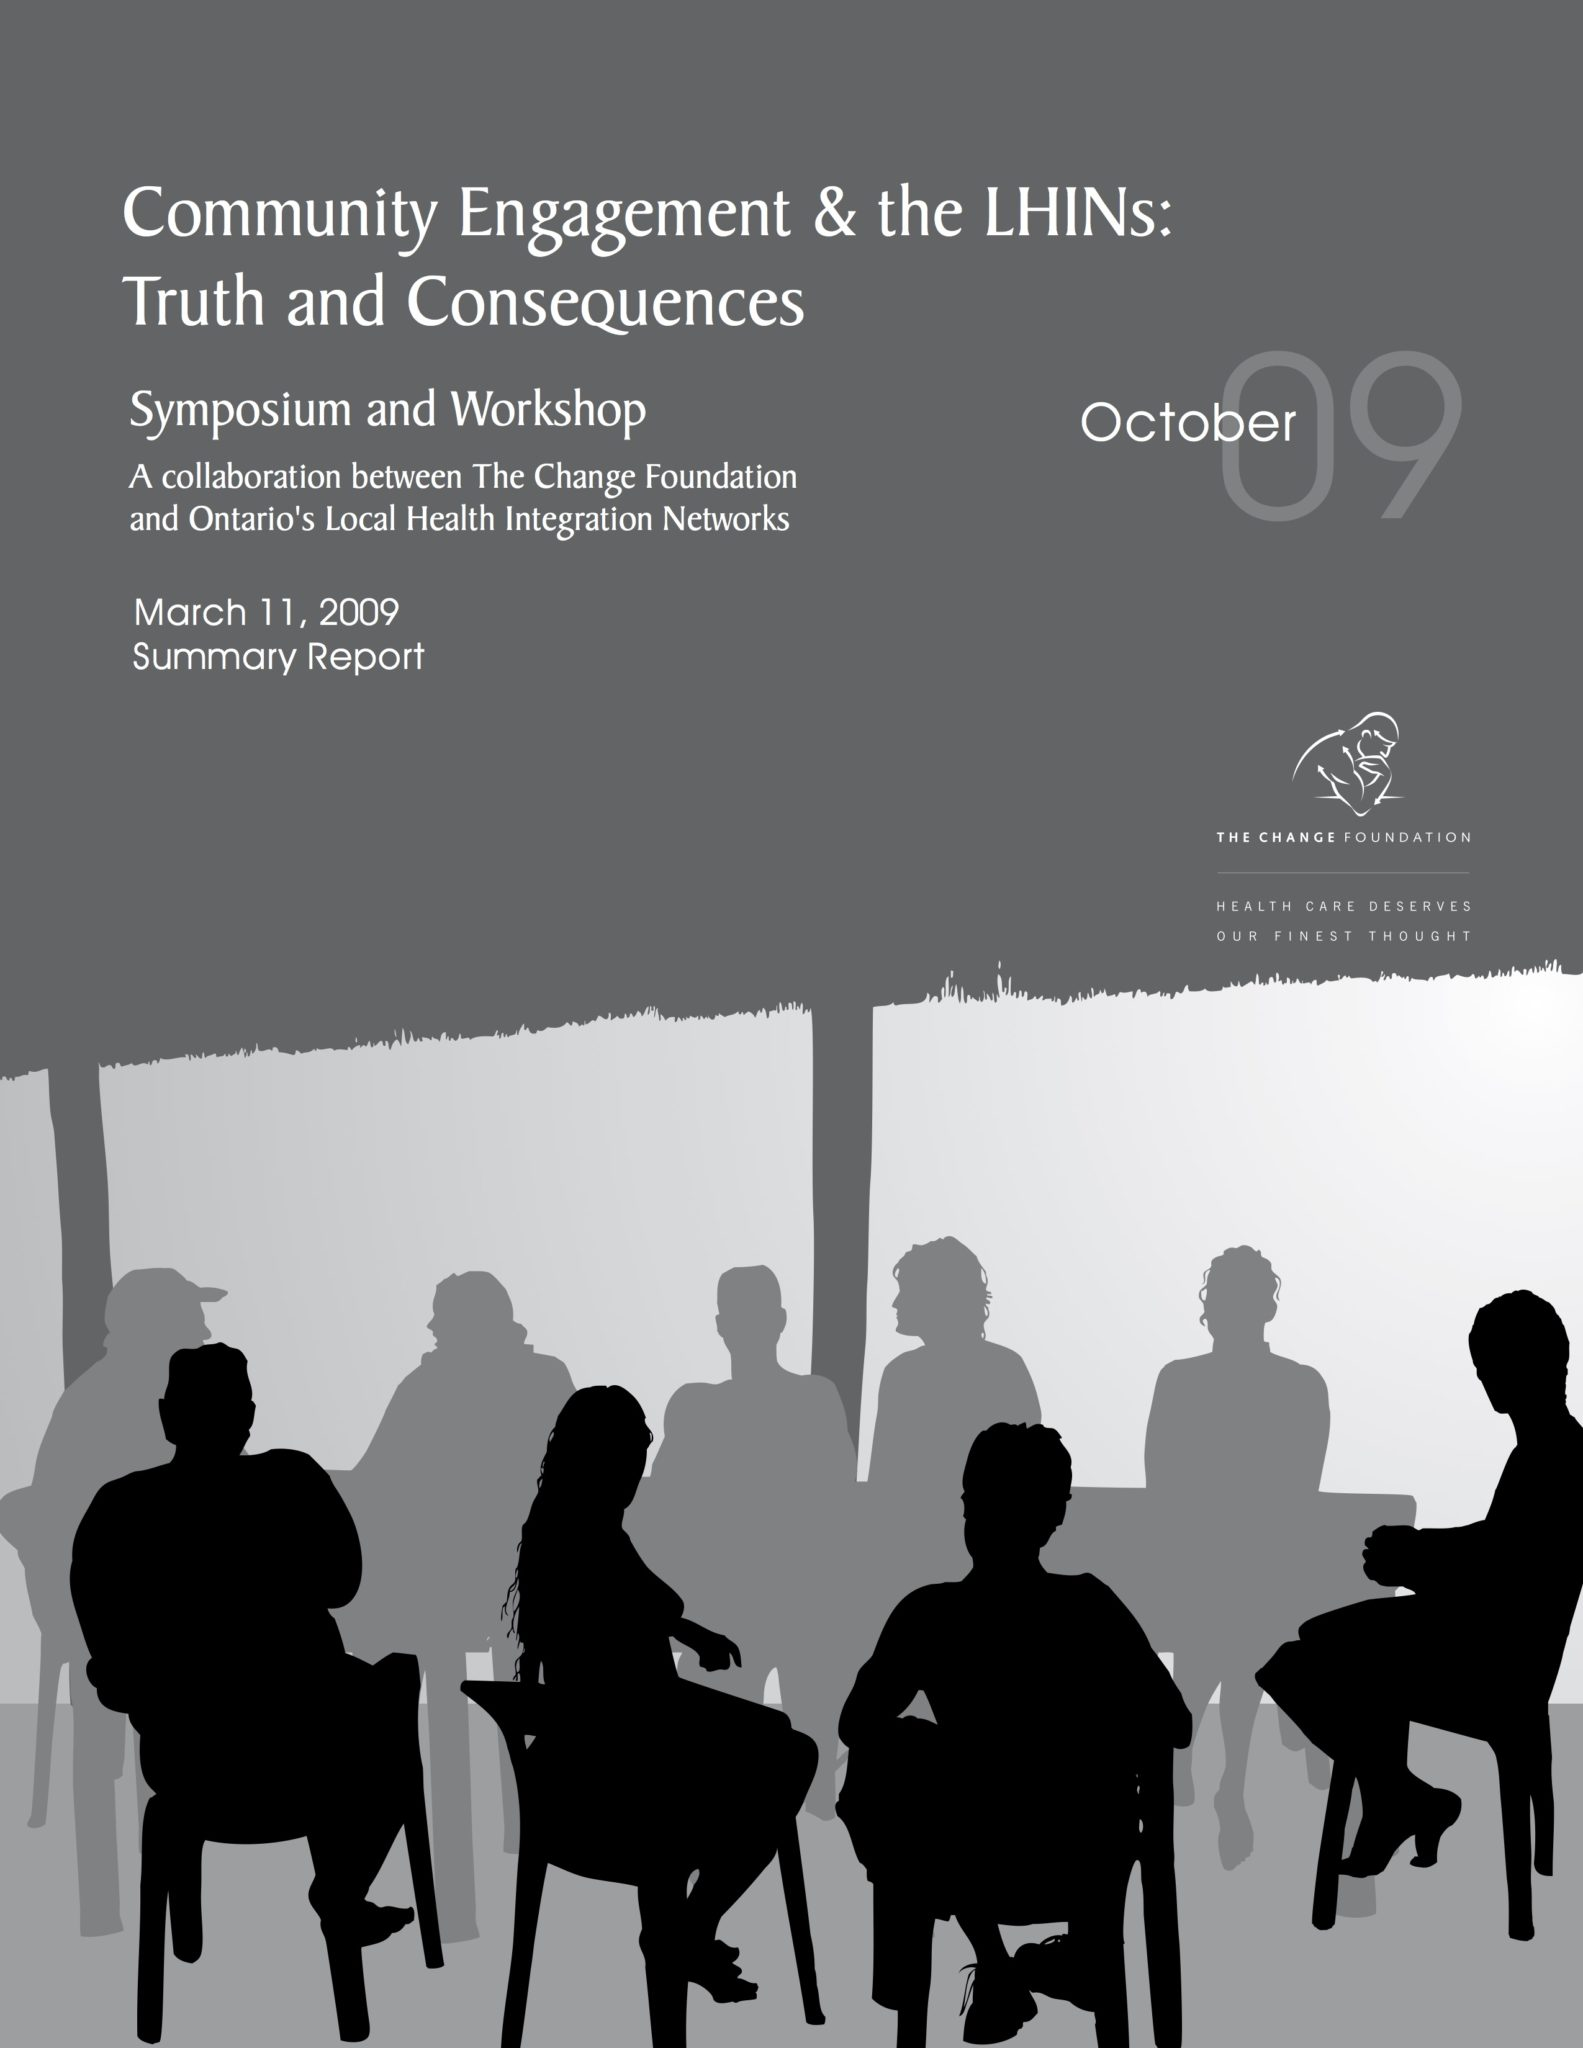 Community Engagement & the LHINs: Truth & Consequences – Summary Report